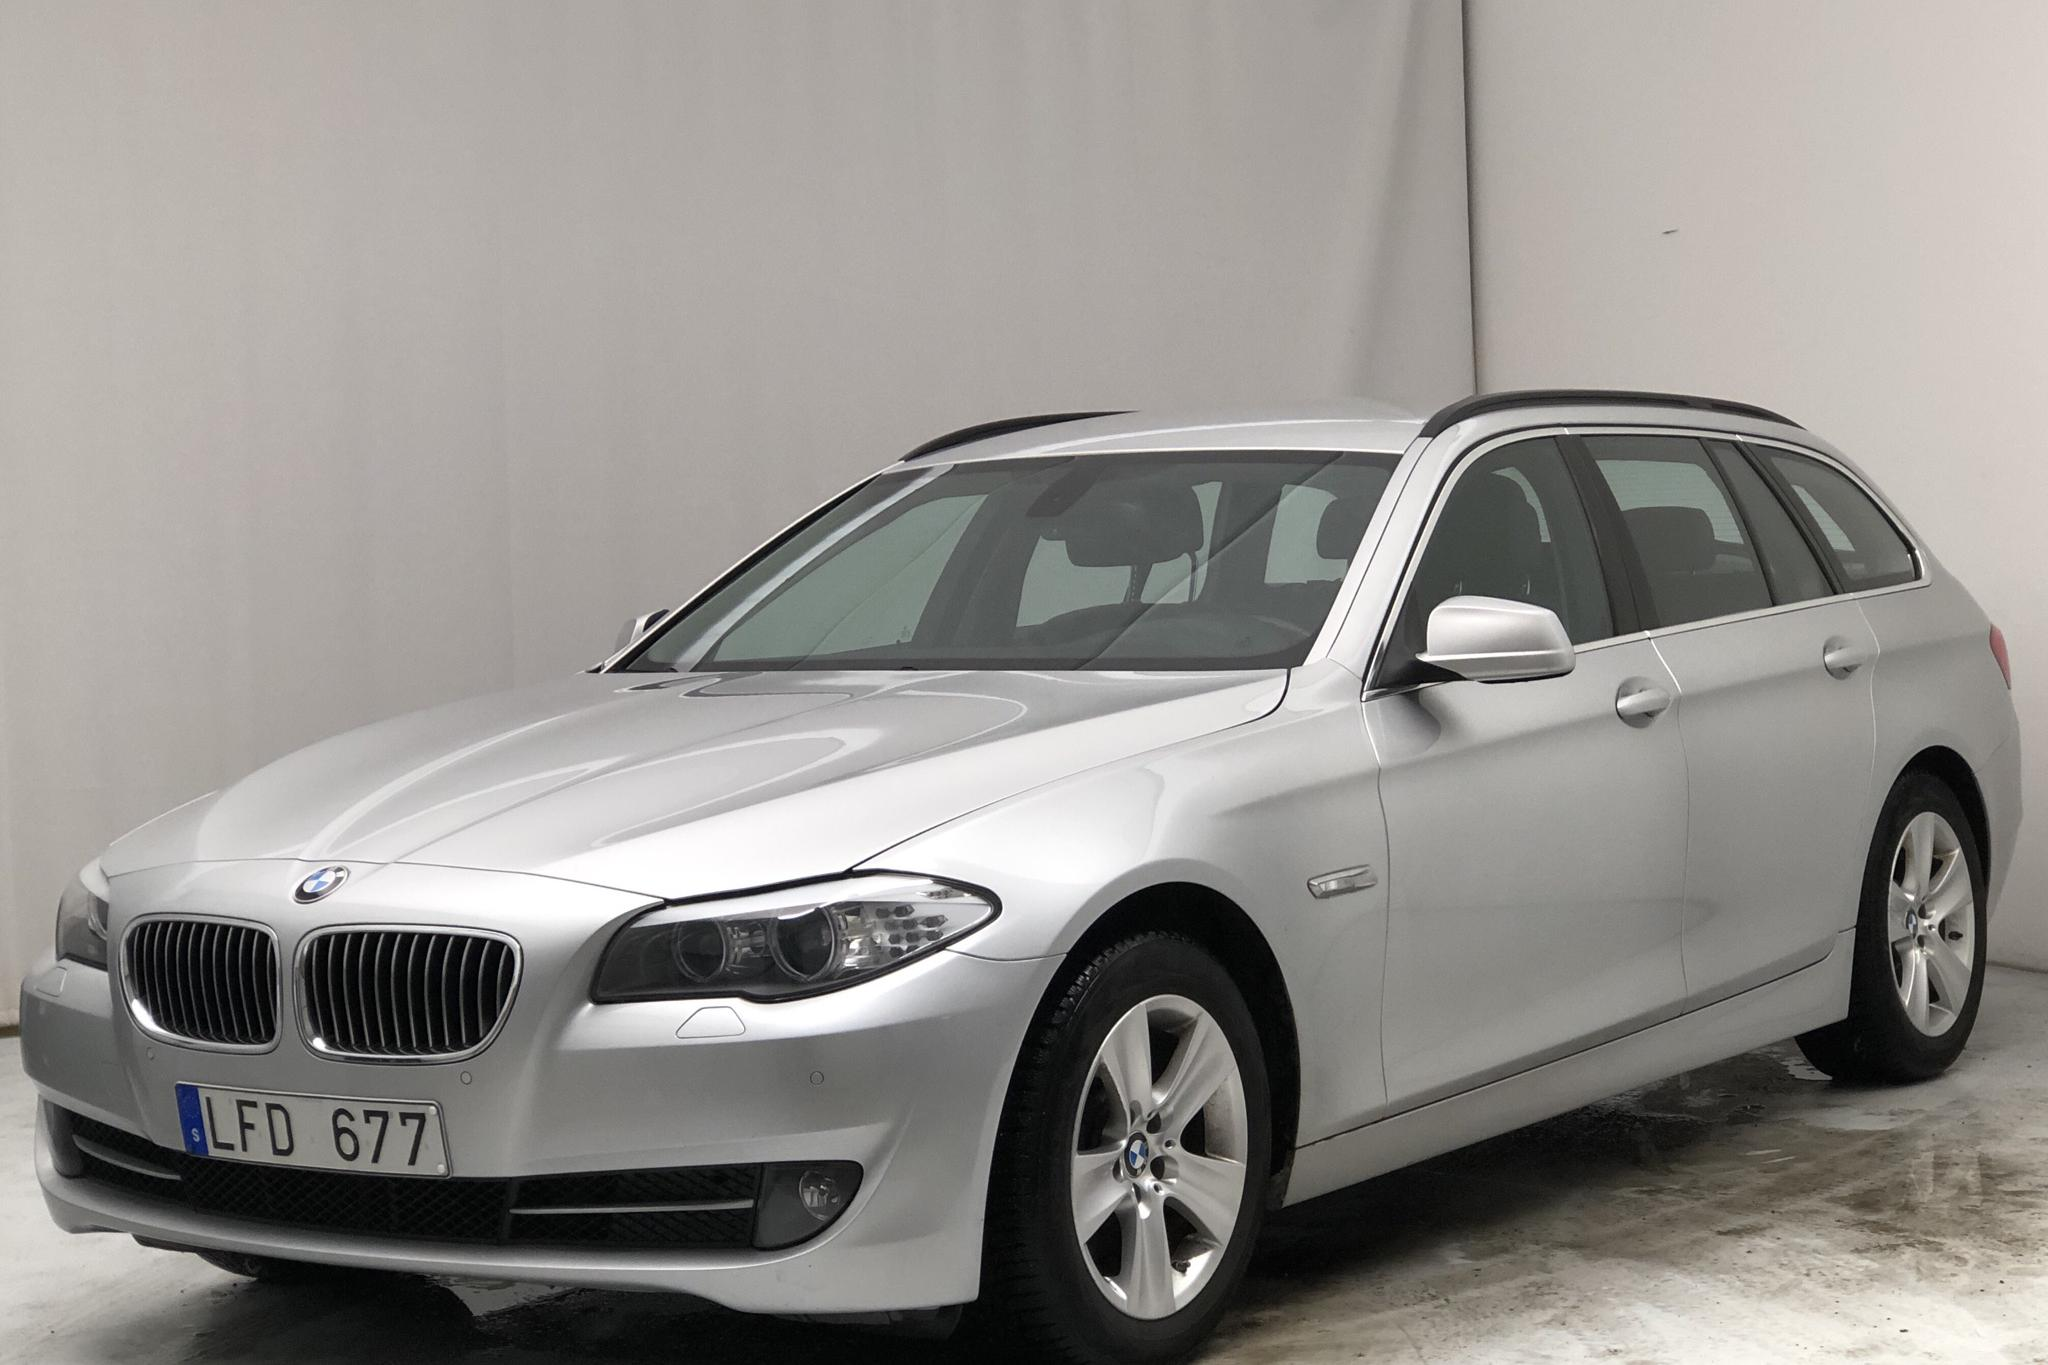 BMW 520d Touring, F11 (184hk) - 9 079 mil - Automat - Light Grey - 2012